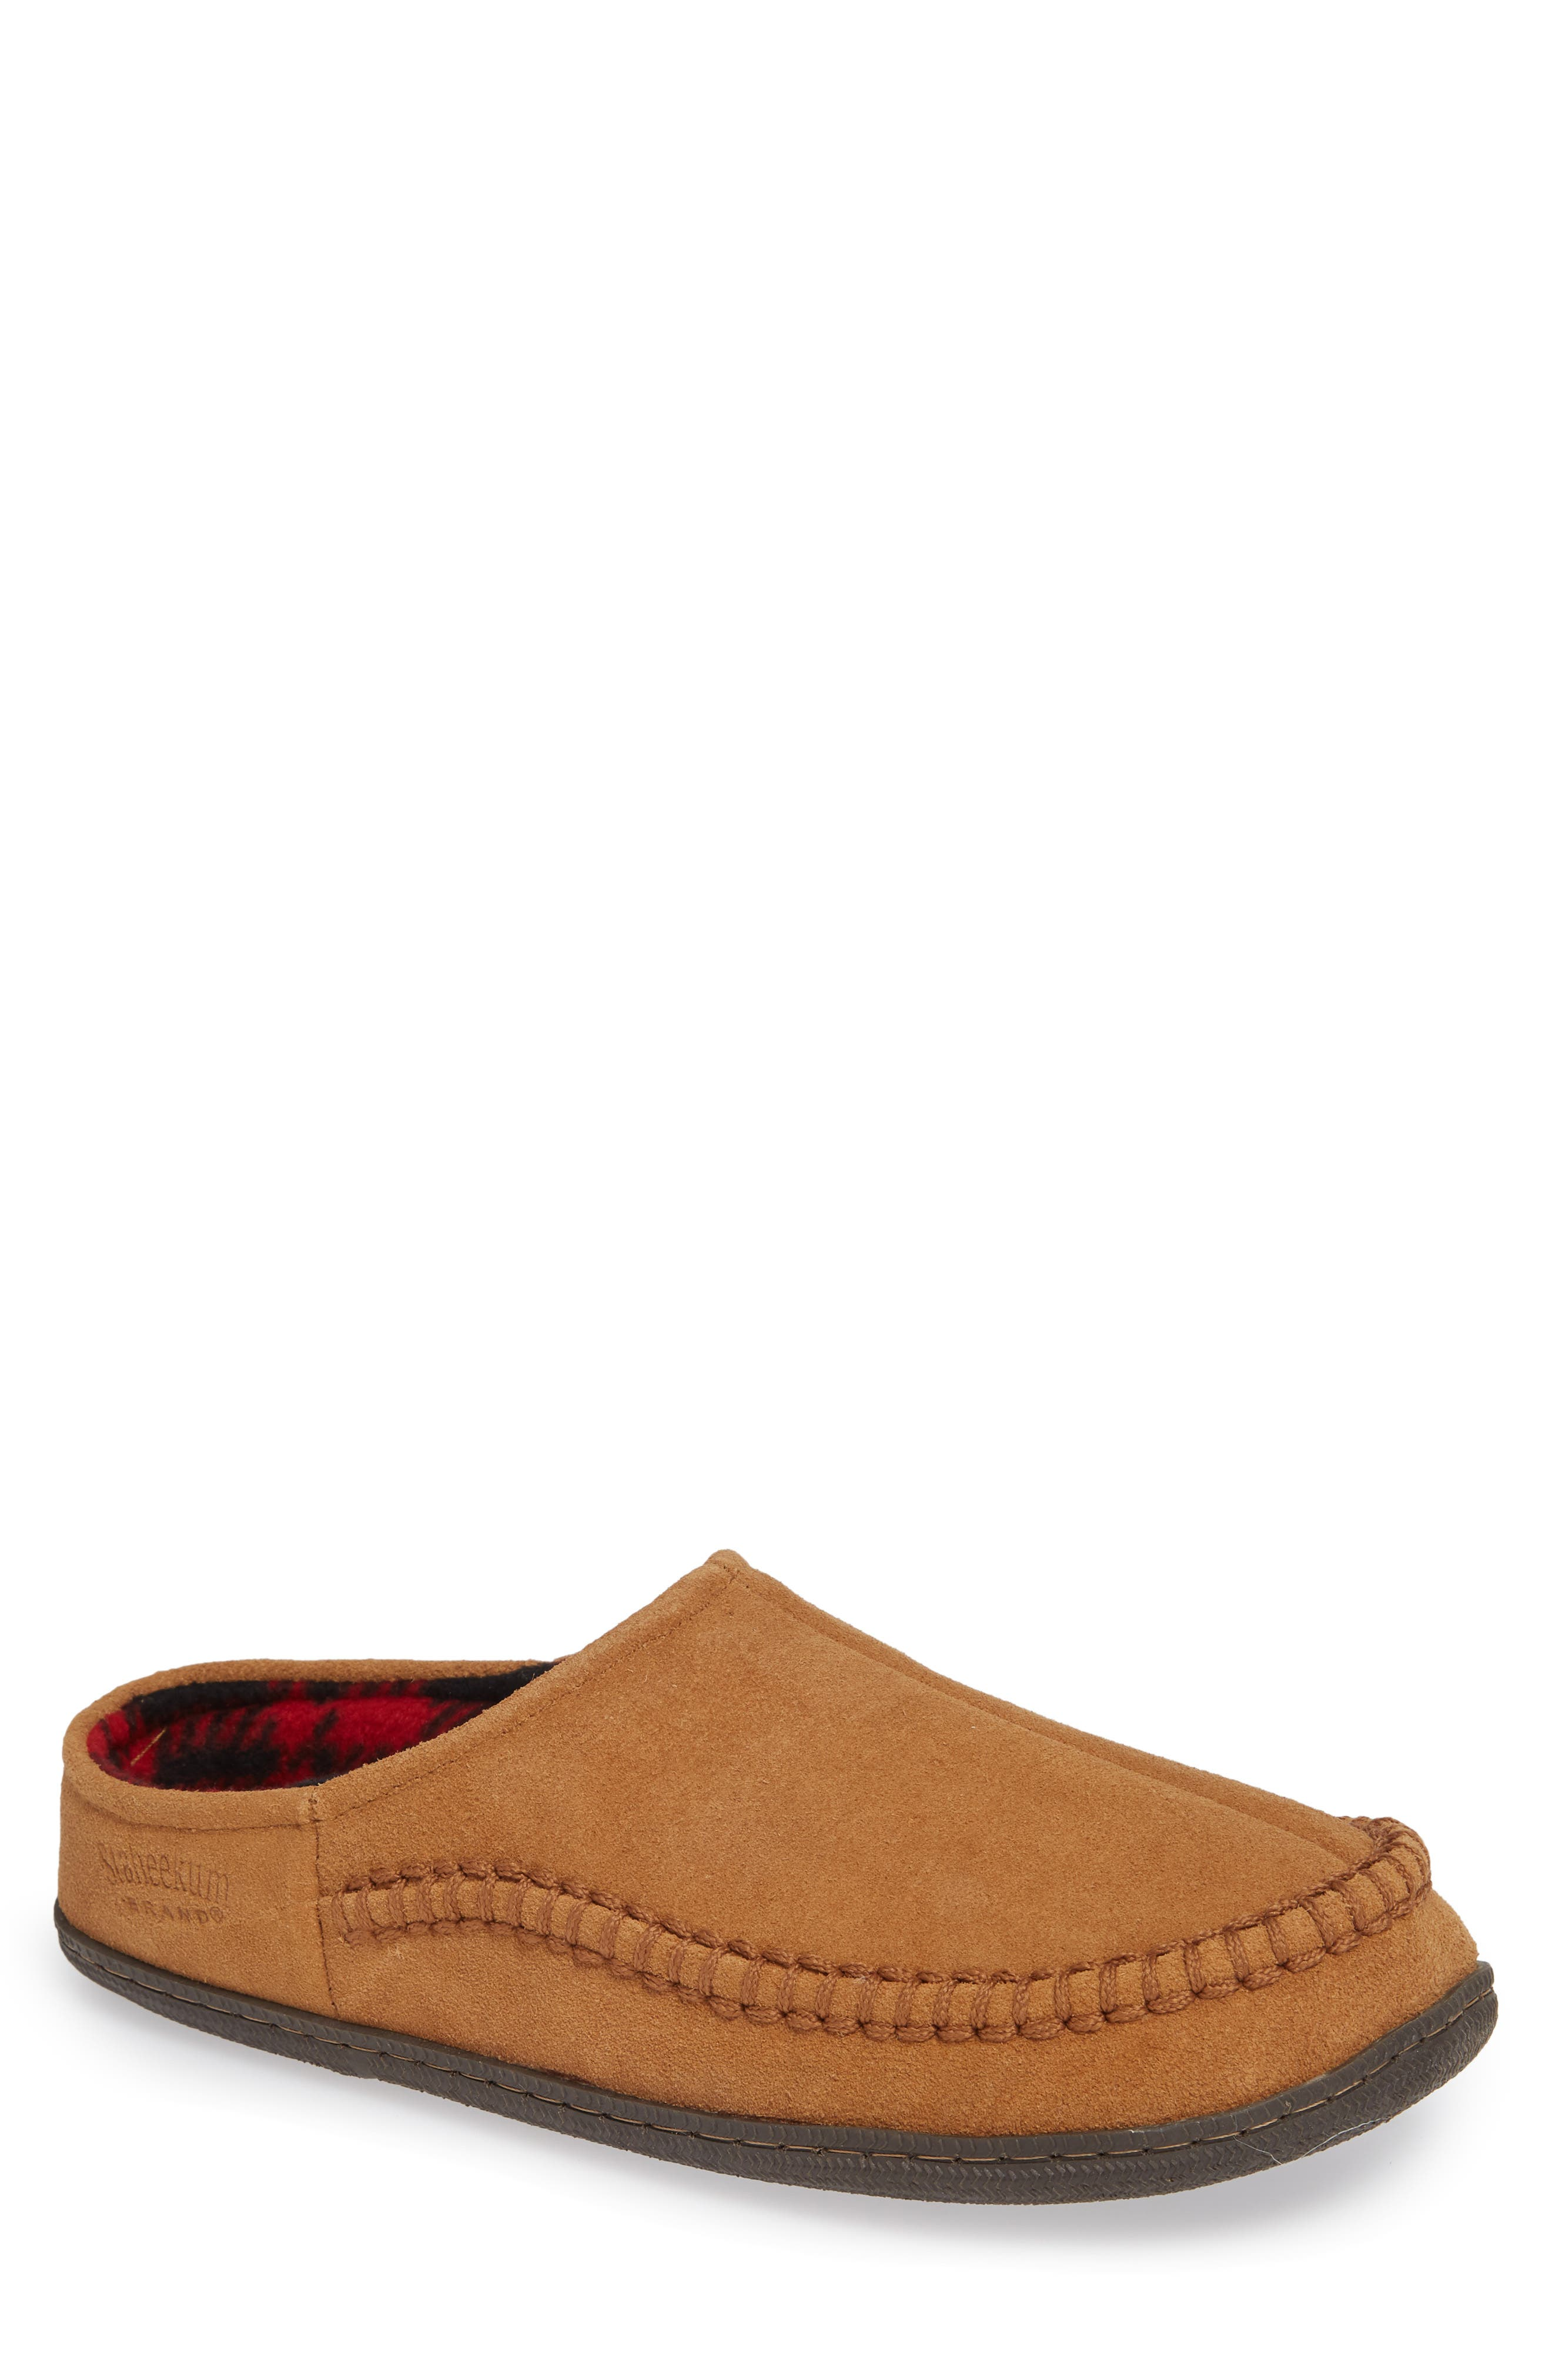 Cypress Flannel Lined Slipper,                             Main thumbnail 1, color,